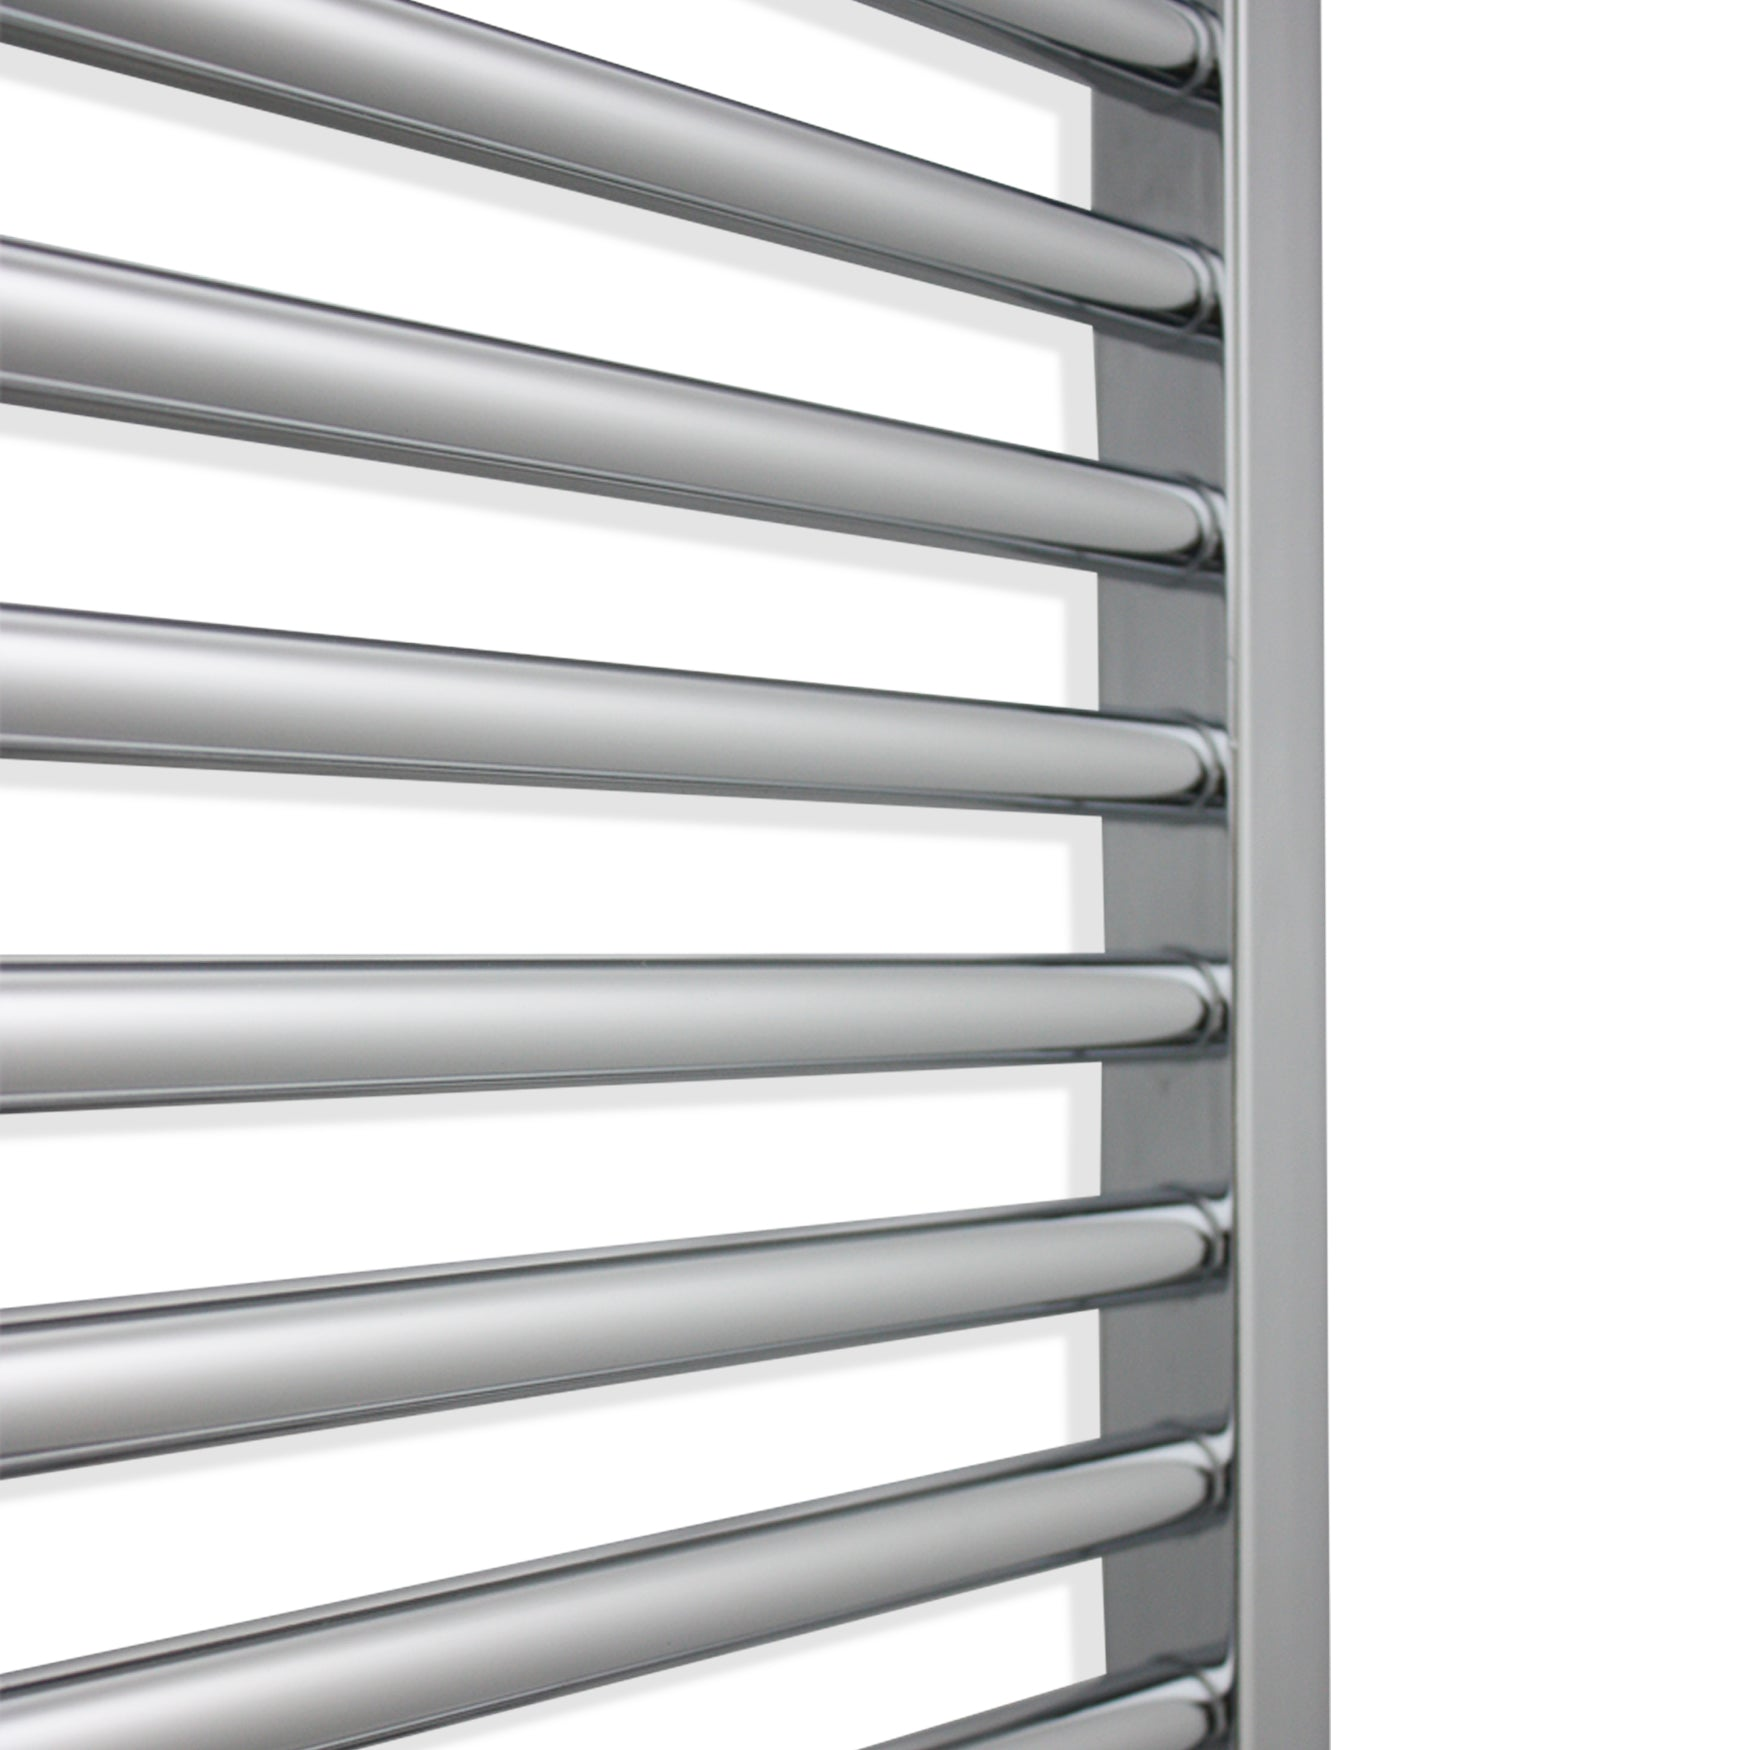 800mm Wide 1000mm High Flat Chrome Pre-Filled Electric Heated Towel Rail Radiator HTR